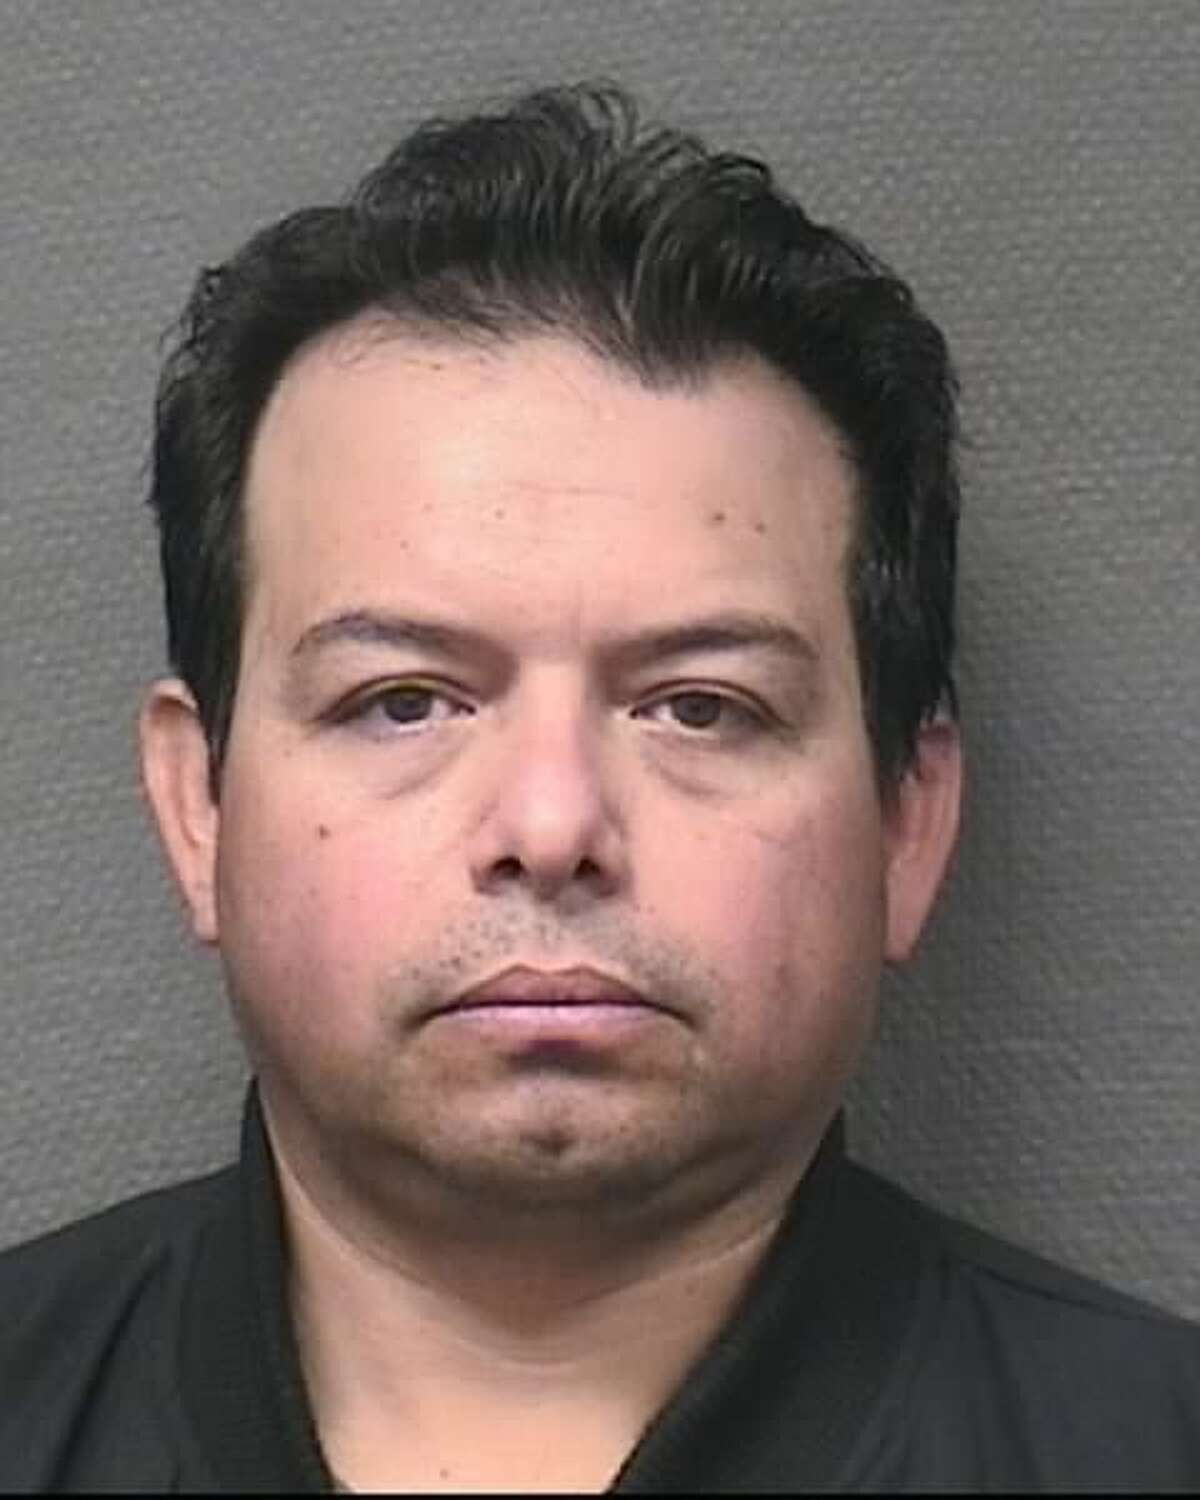 Jose Luis Quintero, 42, of Houston, is charged with felony cruelty to animals, court records show. A judge set a $2,000 bail.